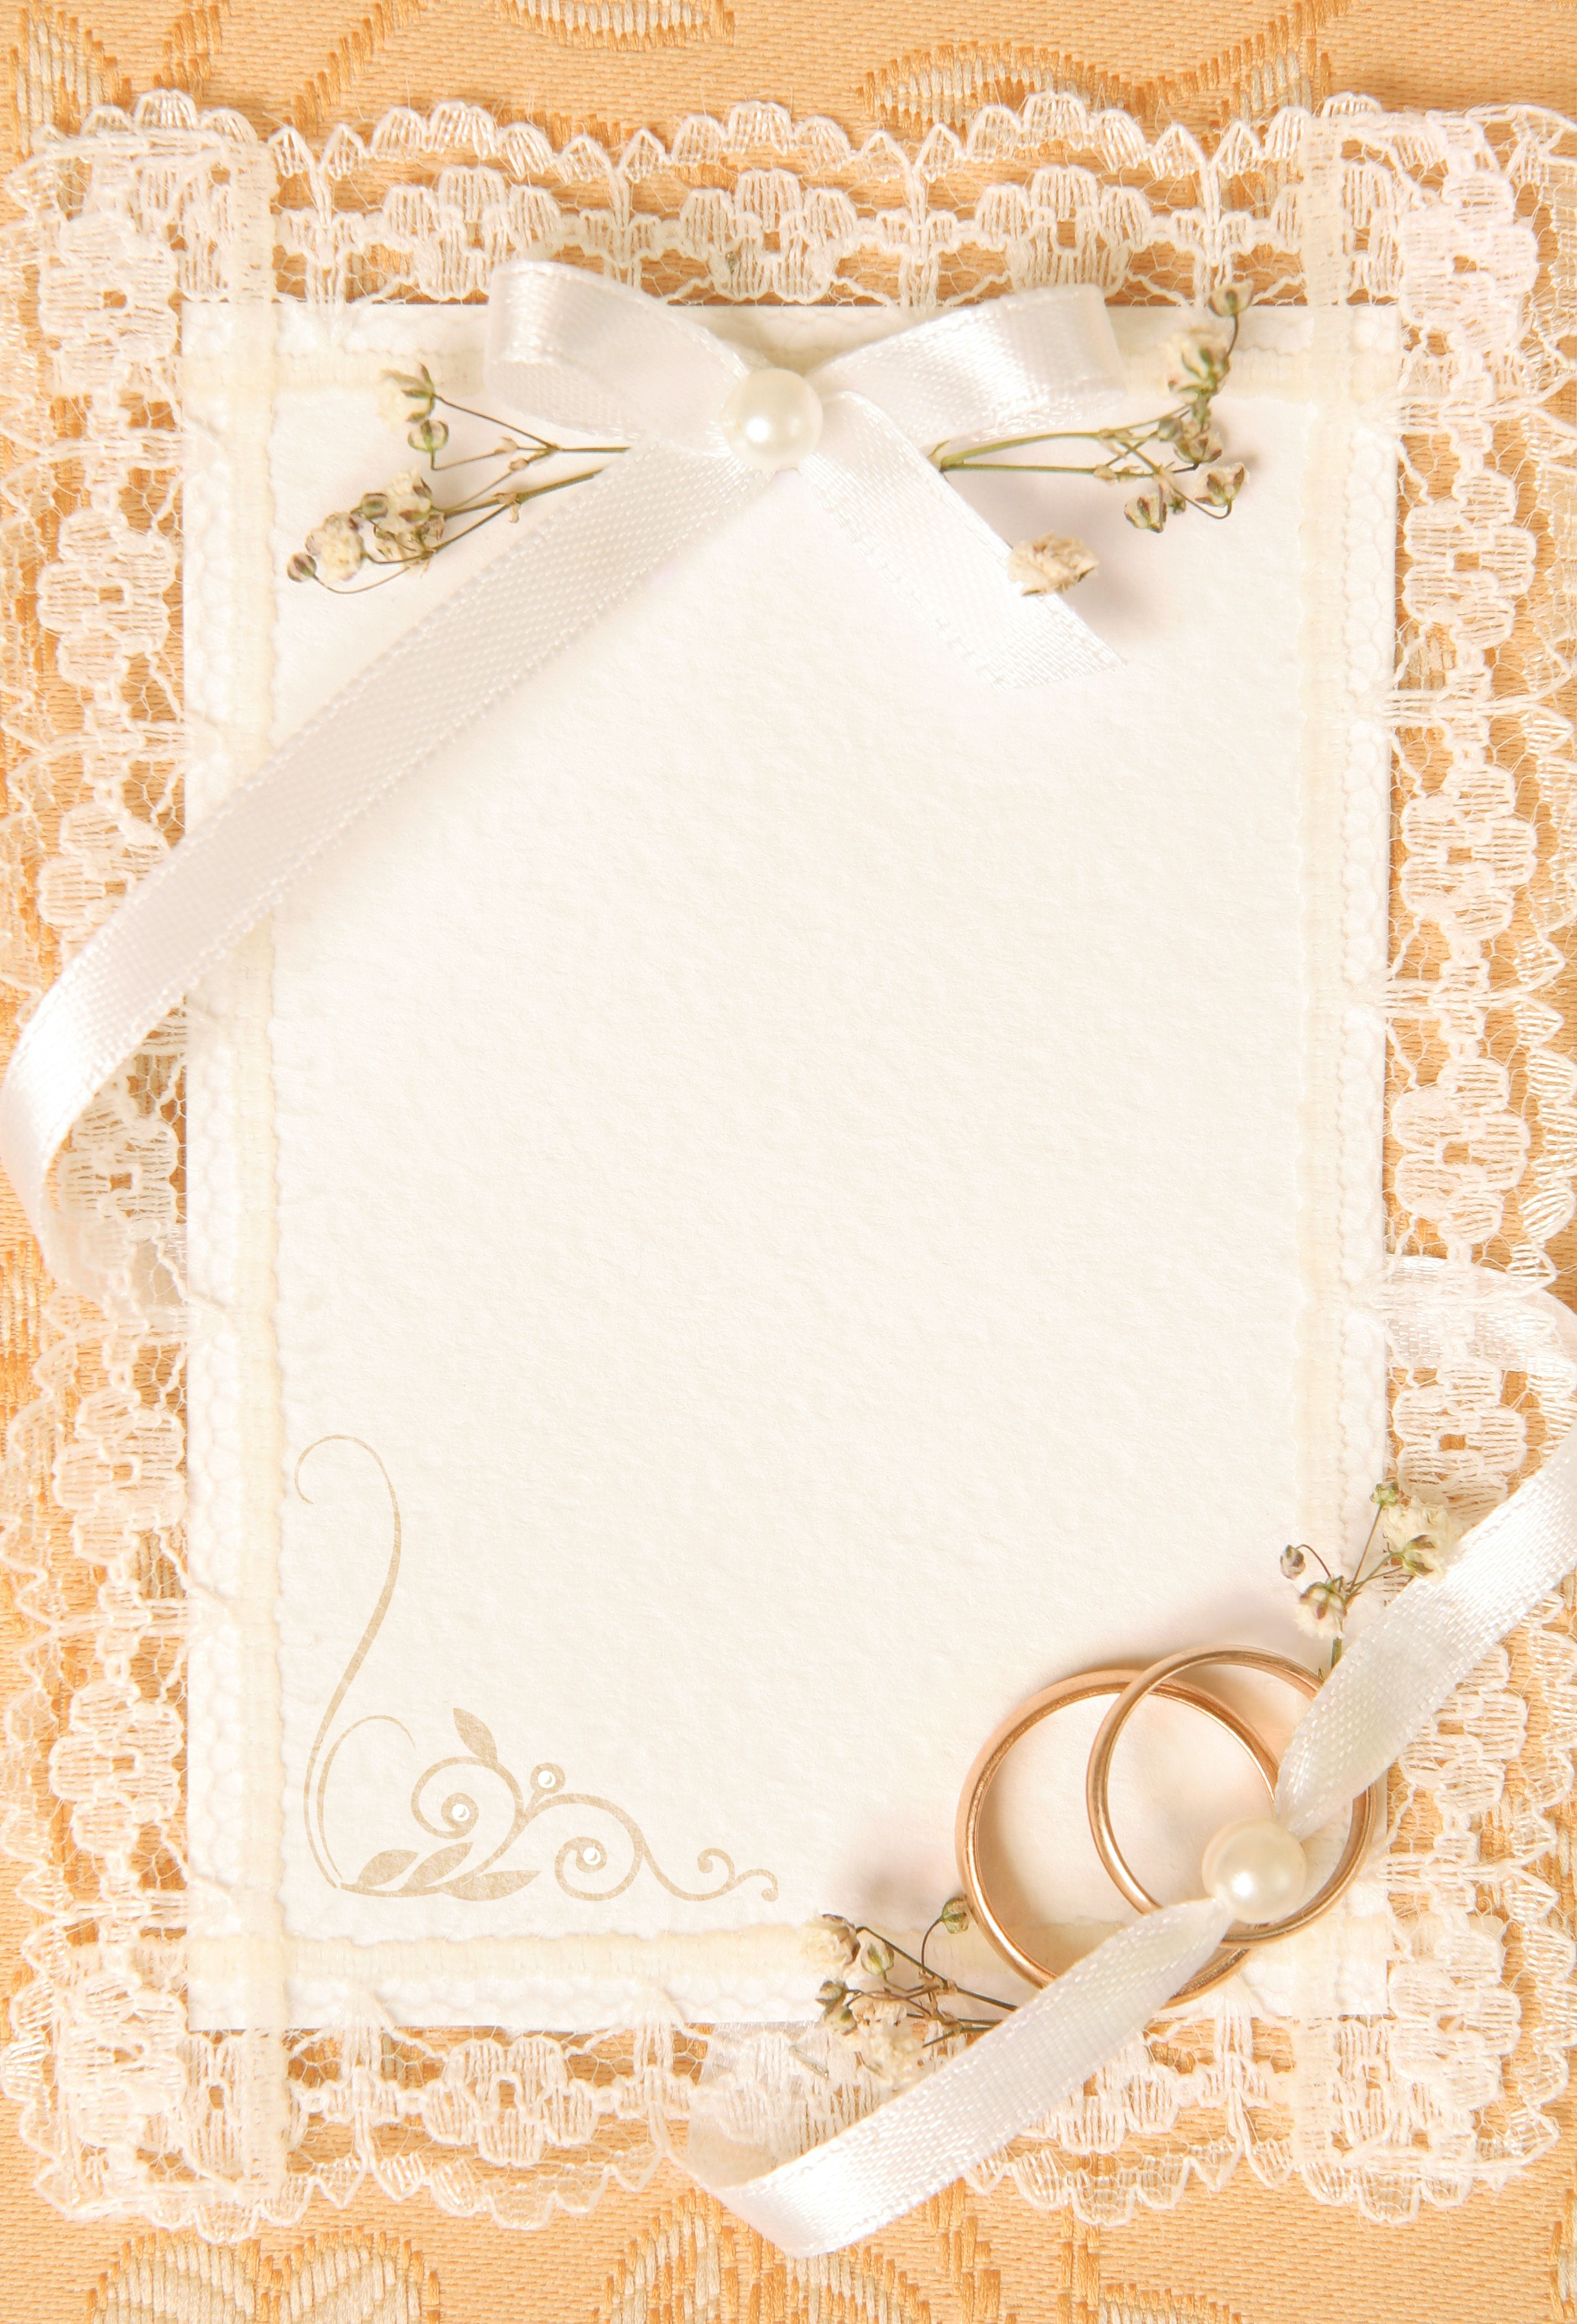 4 Elegant Blank Invitation Card Template Photoshop Collection